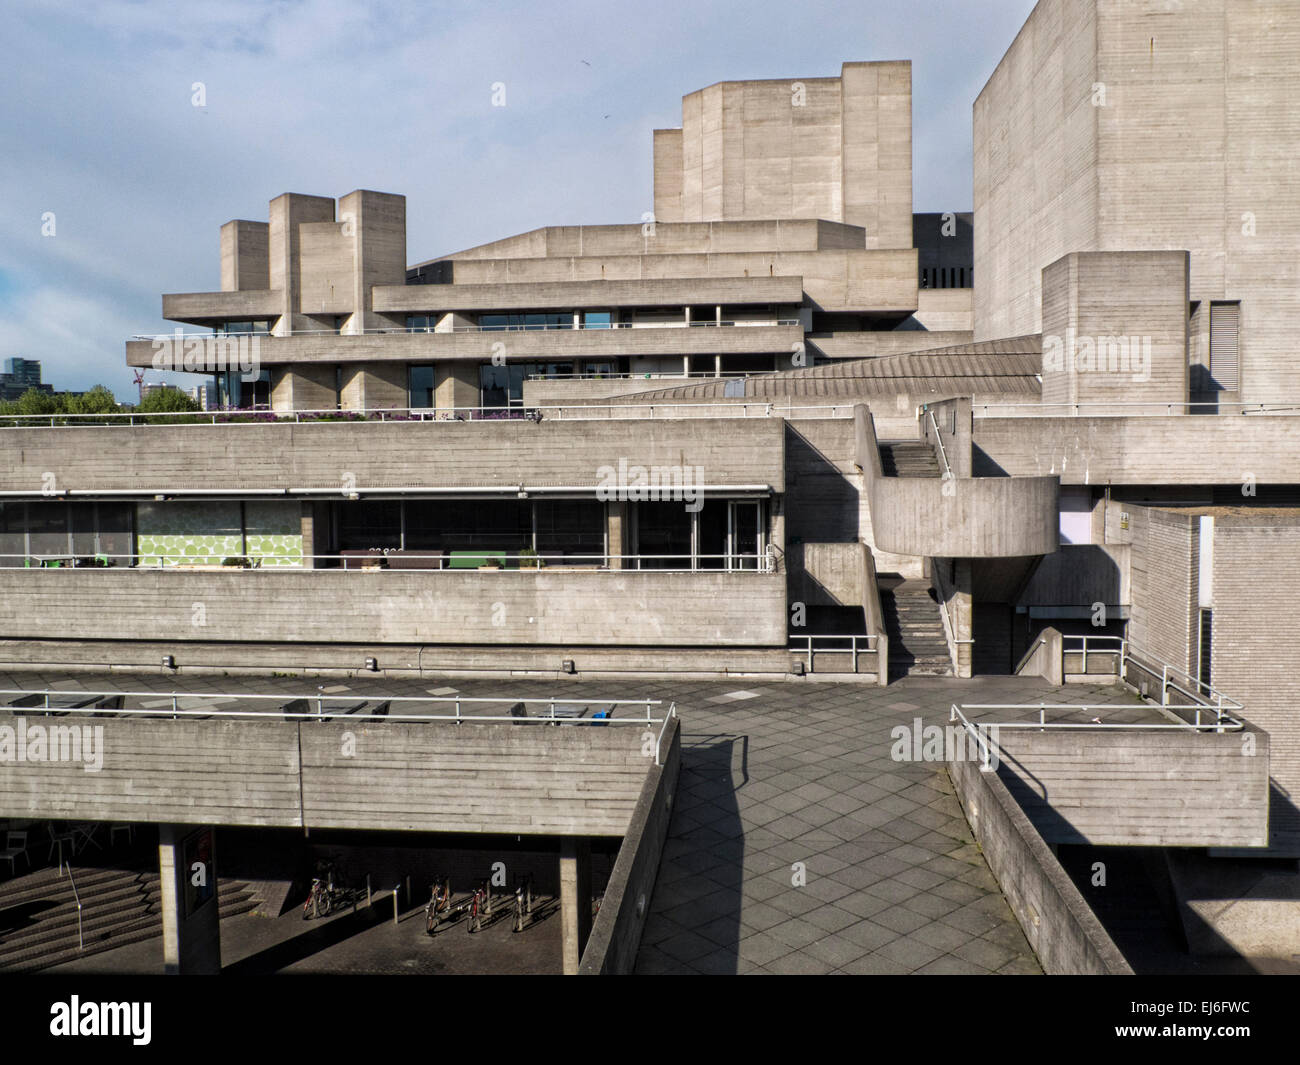 National Theatre, London - Stock Image